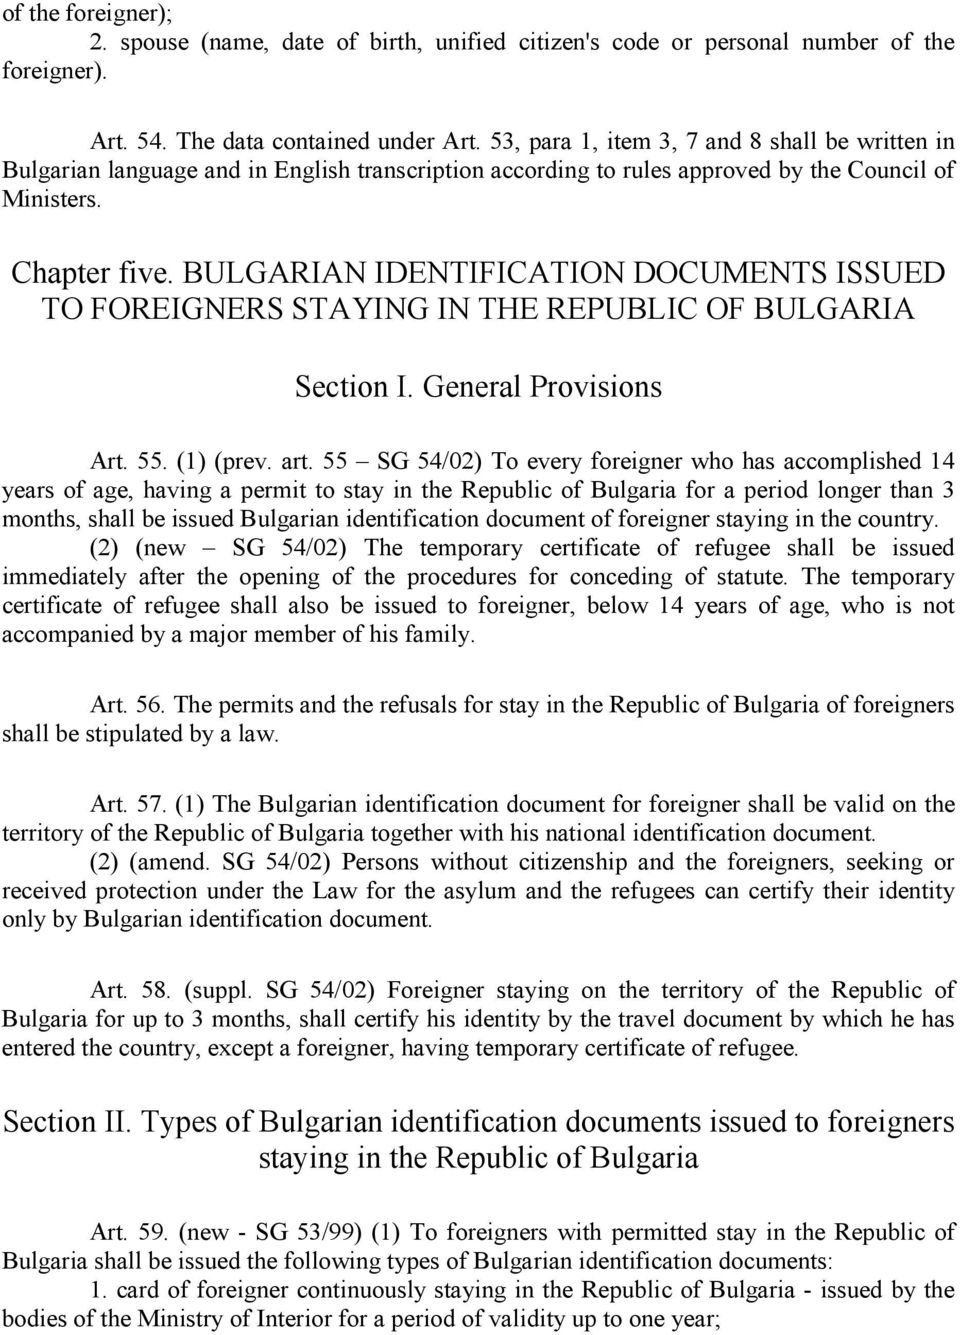 BULGARIAN IDENTIFICATION DOCUMENTS ISSUED TO FOREIGNERS STAYING IN THE REPUBLIC OF BULGARIA Section I. General Provisions Art. 55. (1) (prev. art.